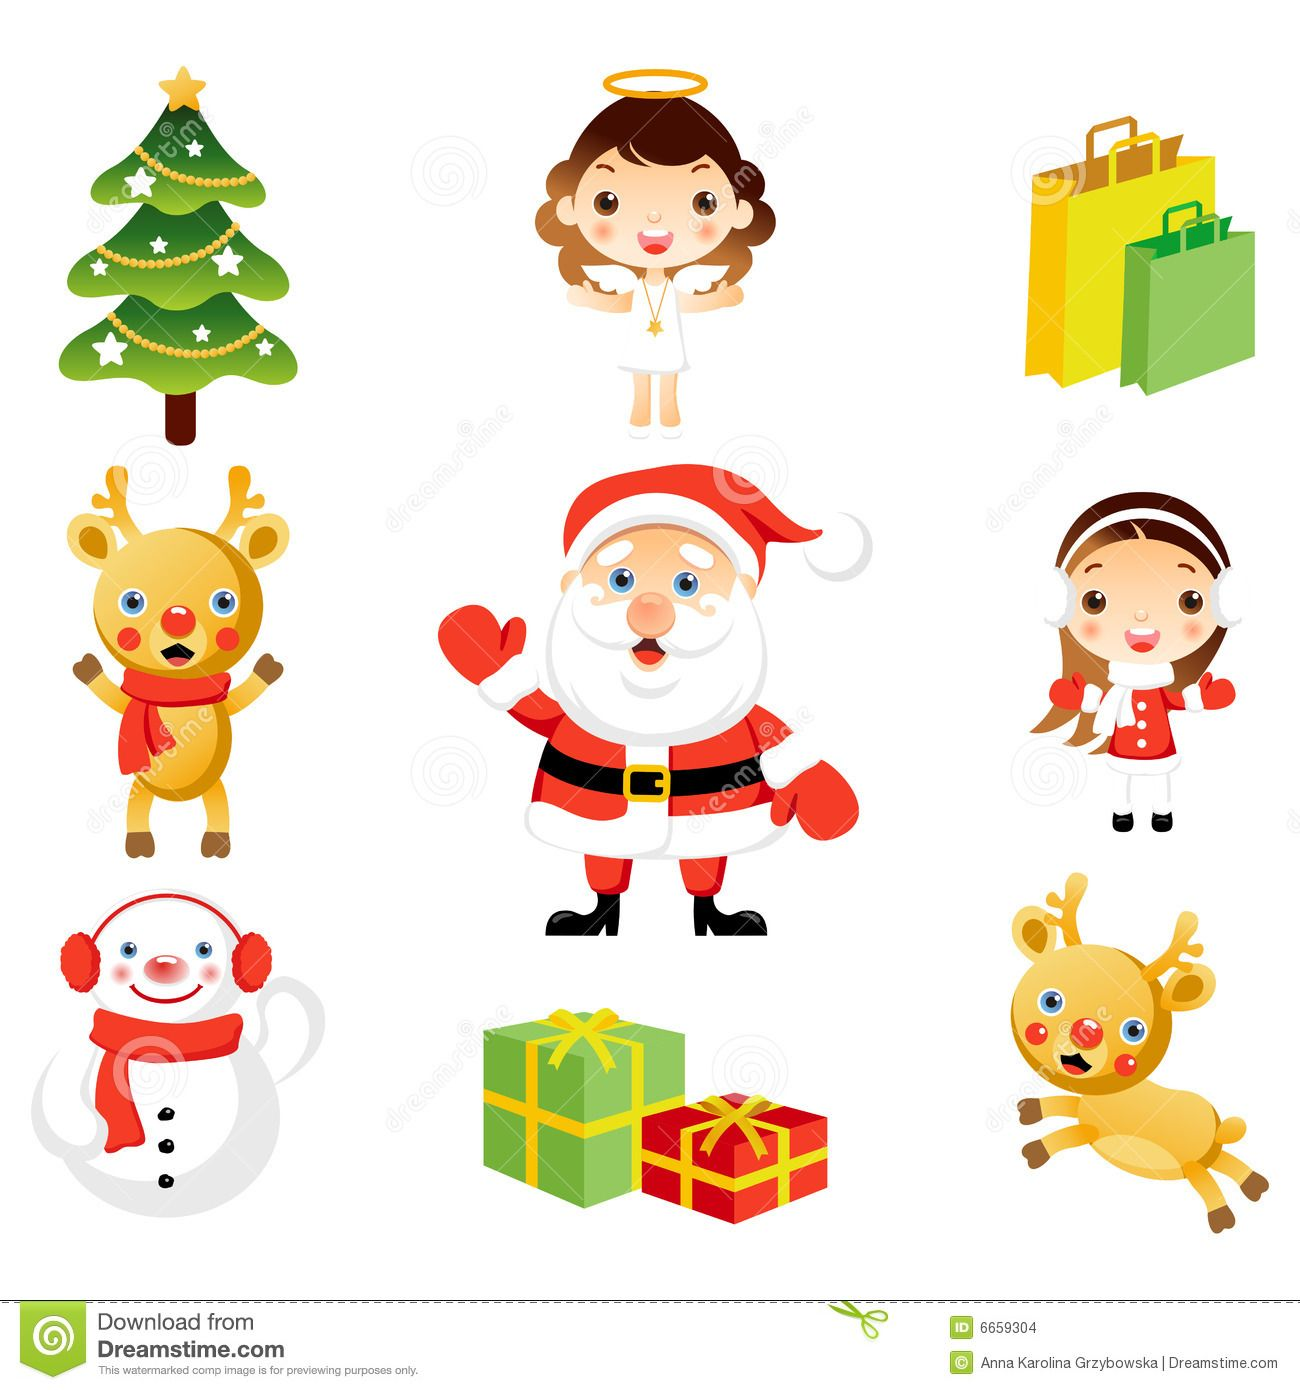 Rustic Christmas Clipart Cliparthut Free Clipart Christmas Clipart Free Clip Art Christmas Clipart Free